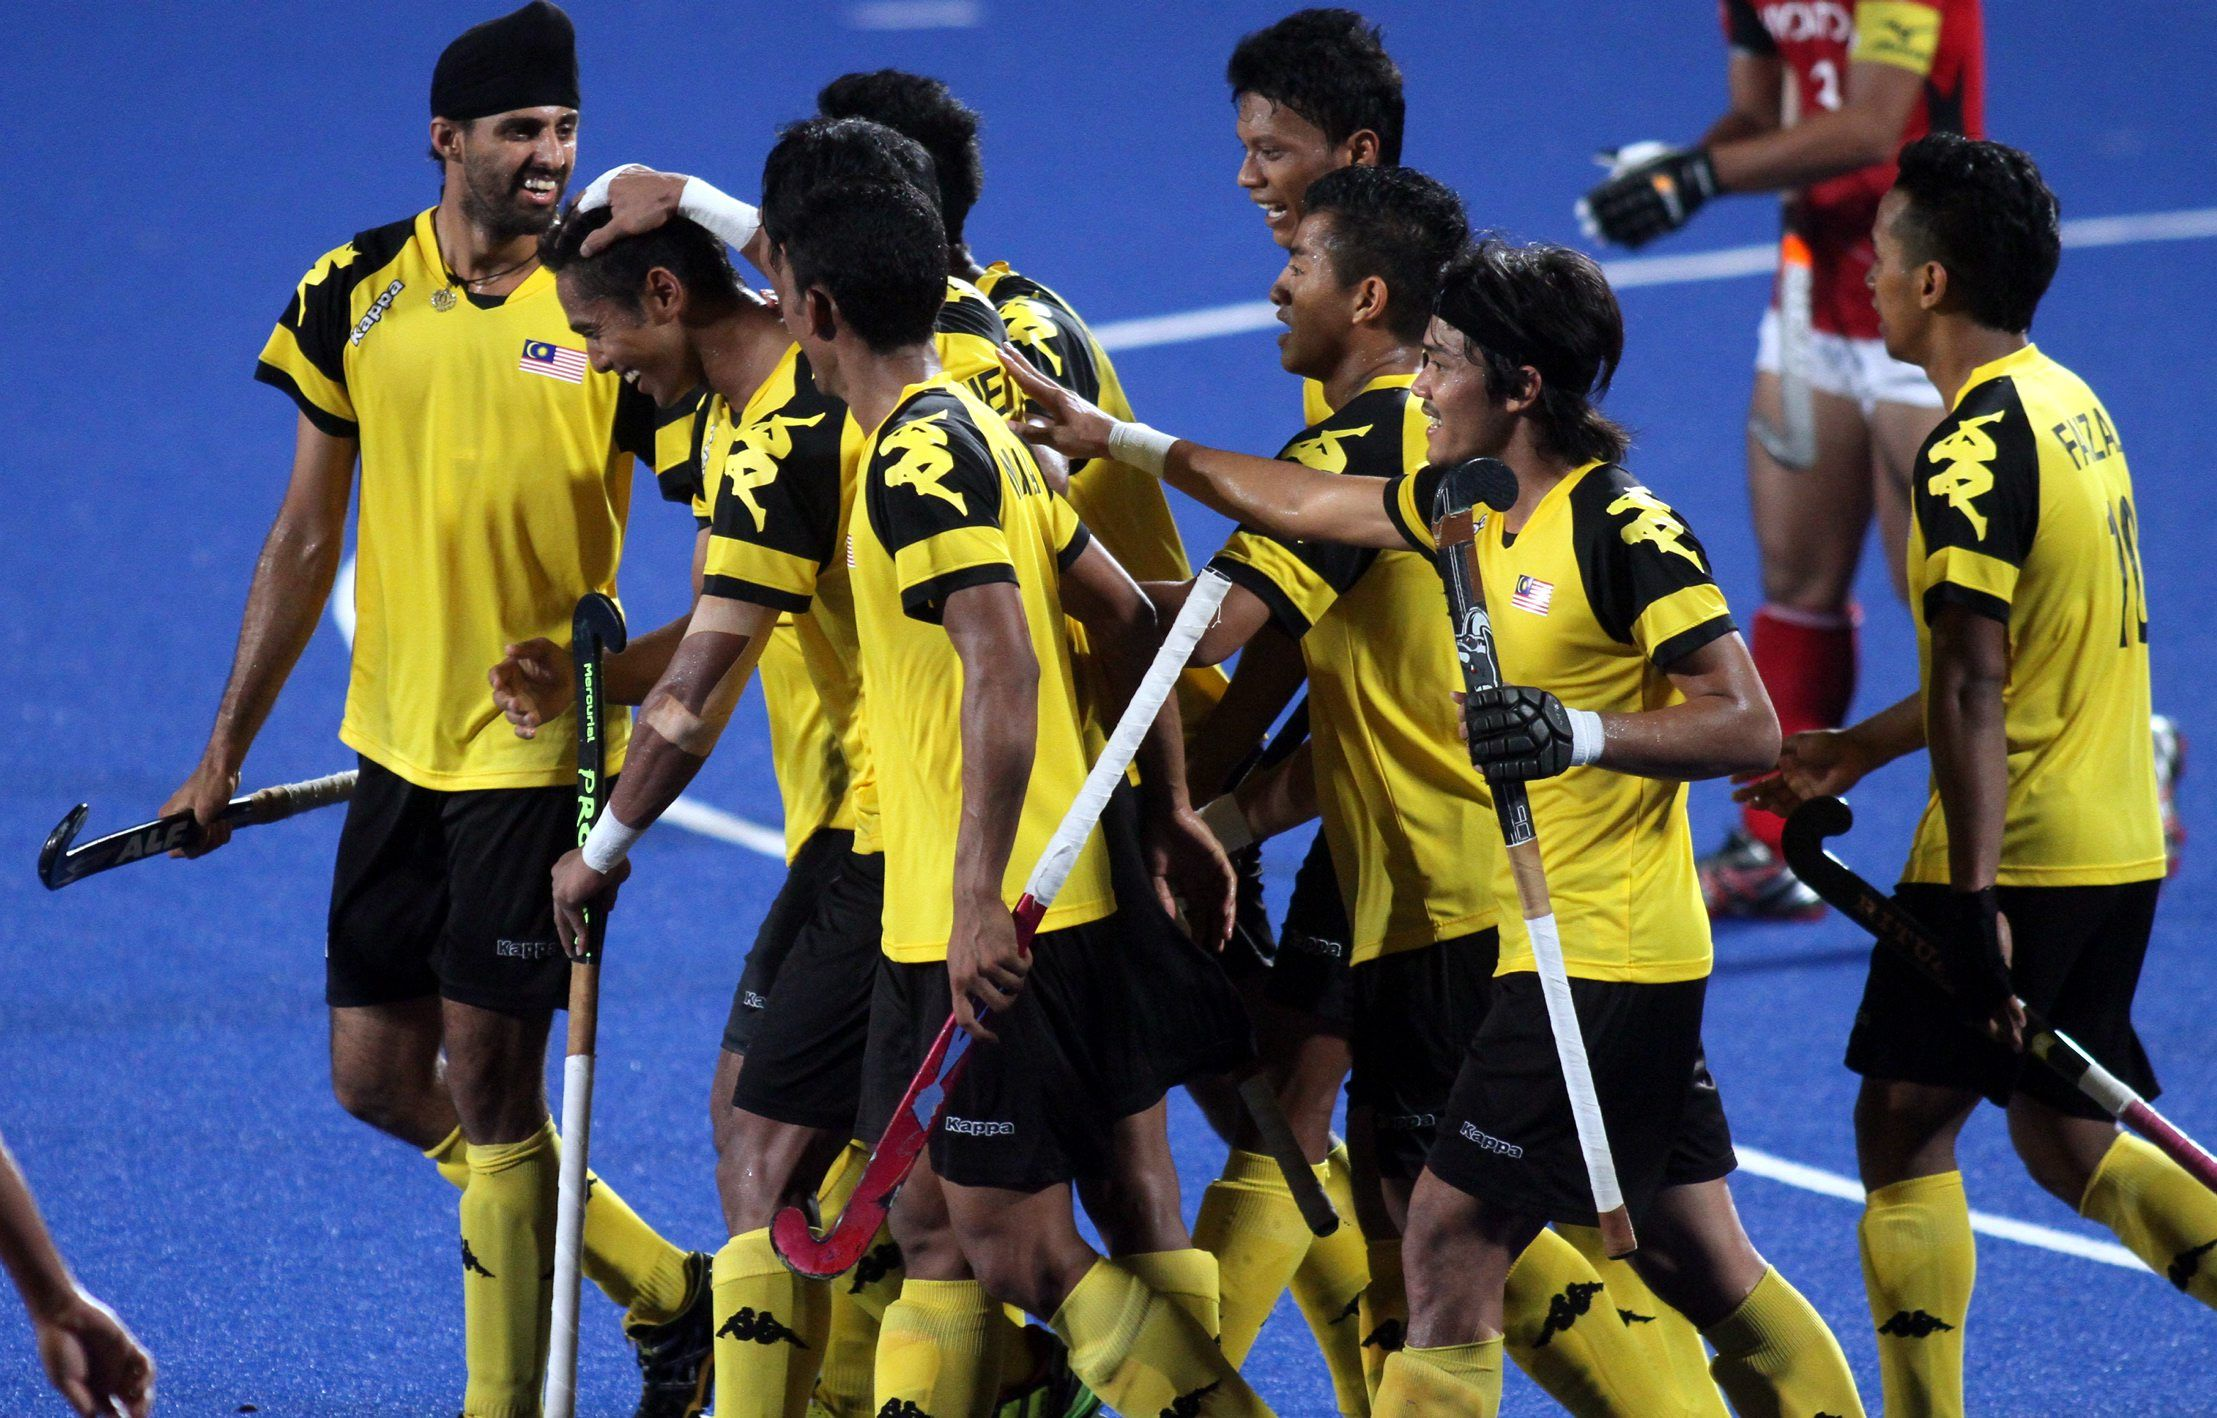 Members of the senior hockey team at the Asia Cup last year. The training programme for the national team will be reviewed, after the Government decided to cut 30% of the Malaysian Hockey Confederation\'s funding.